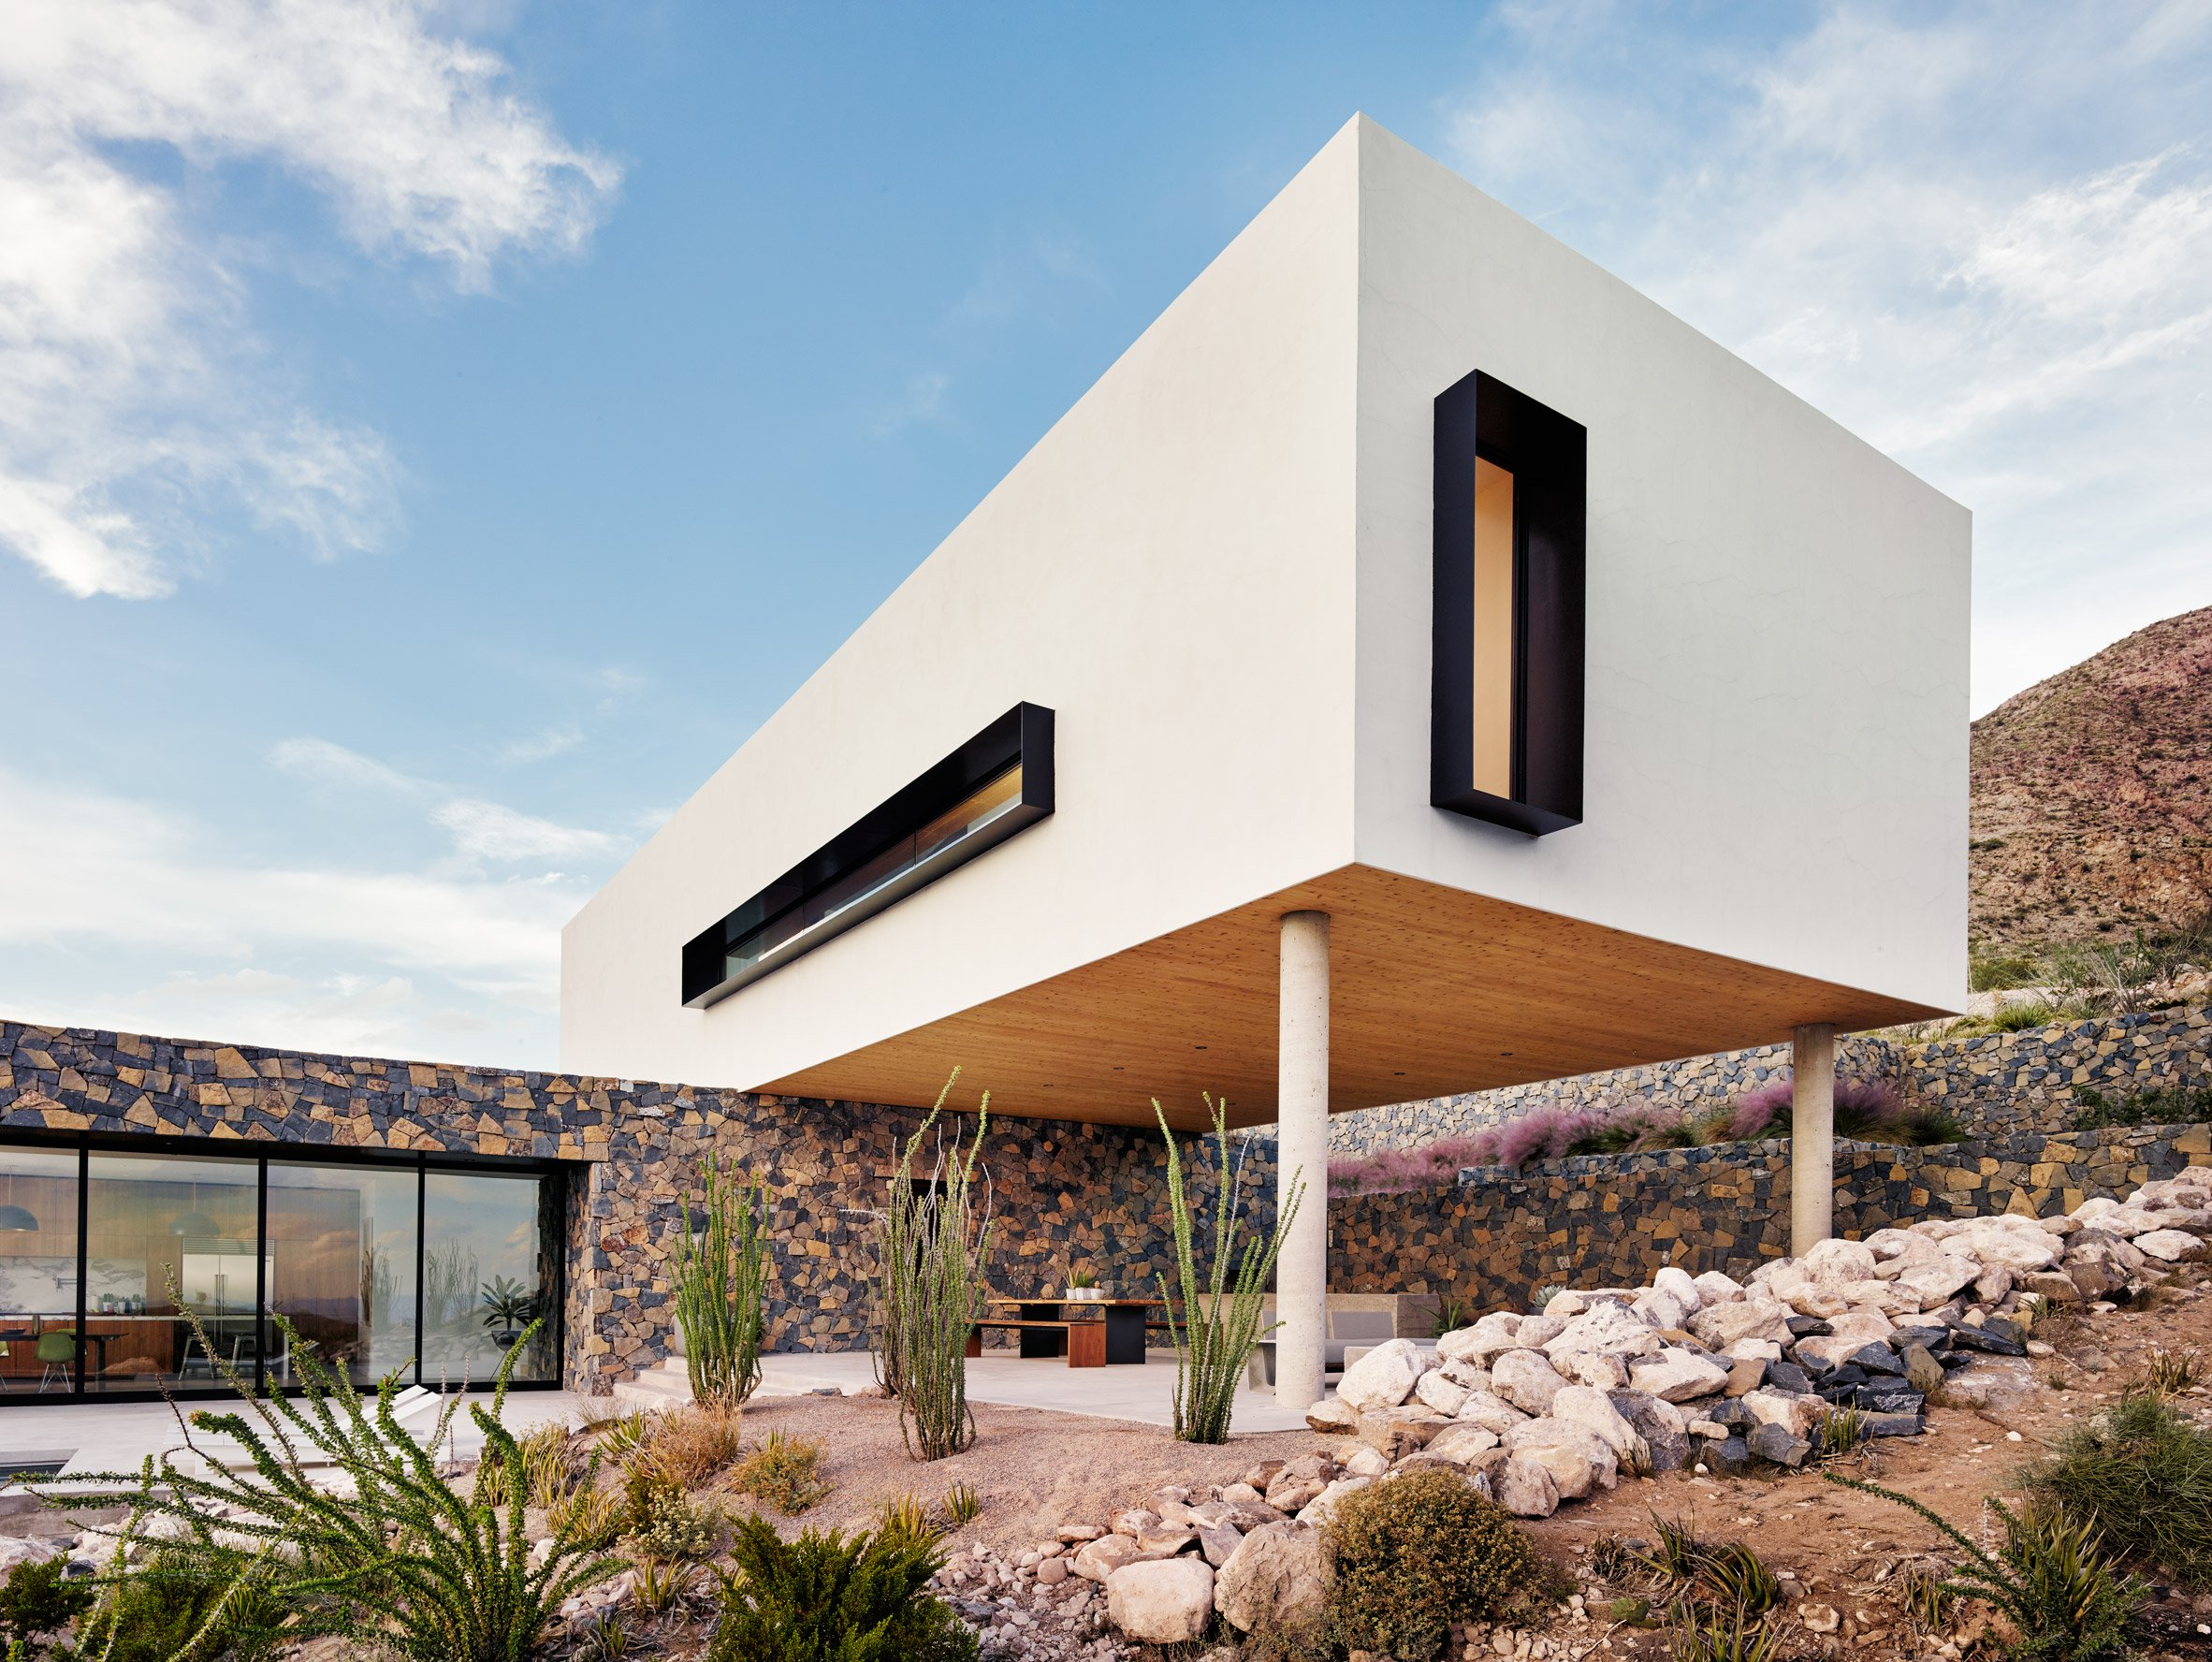 Volcanic stone contrasts with white stucco at Texas desert home by Hazelbaker Rush